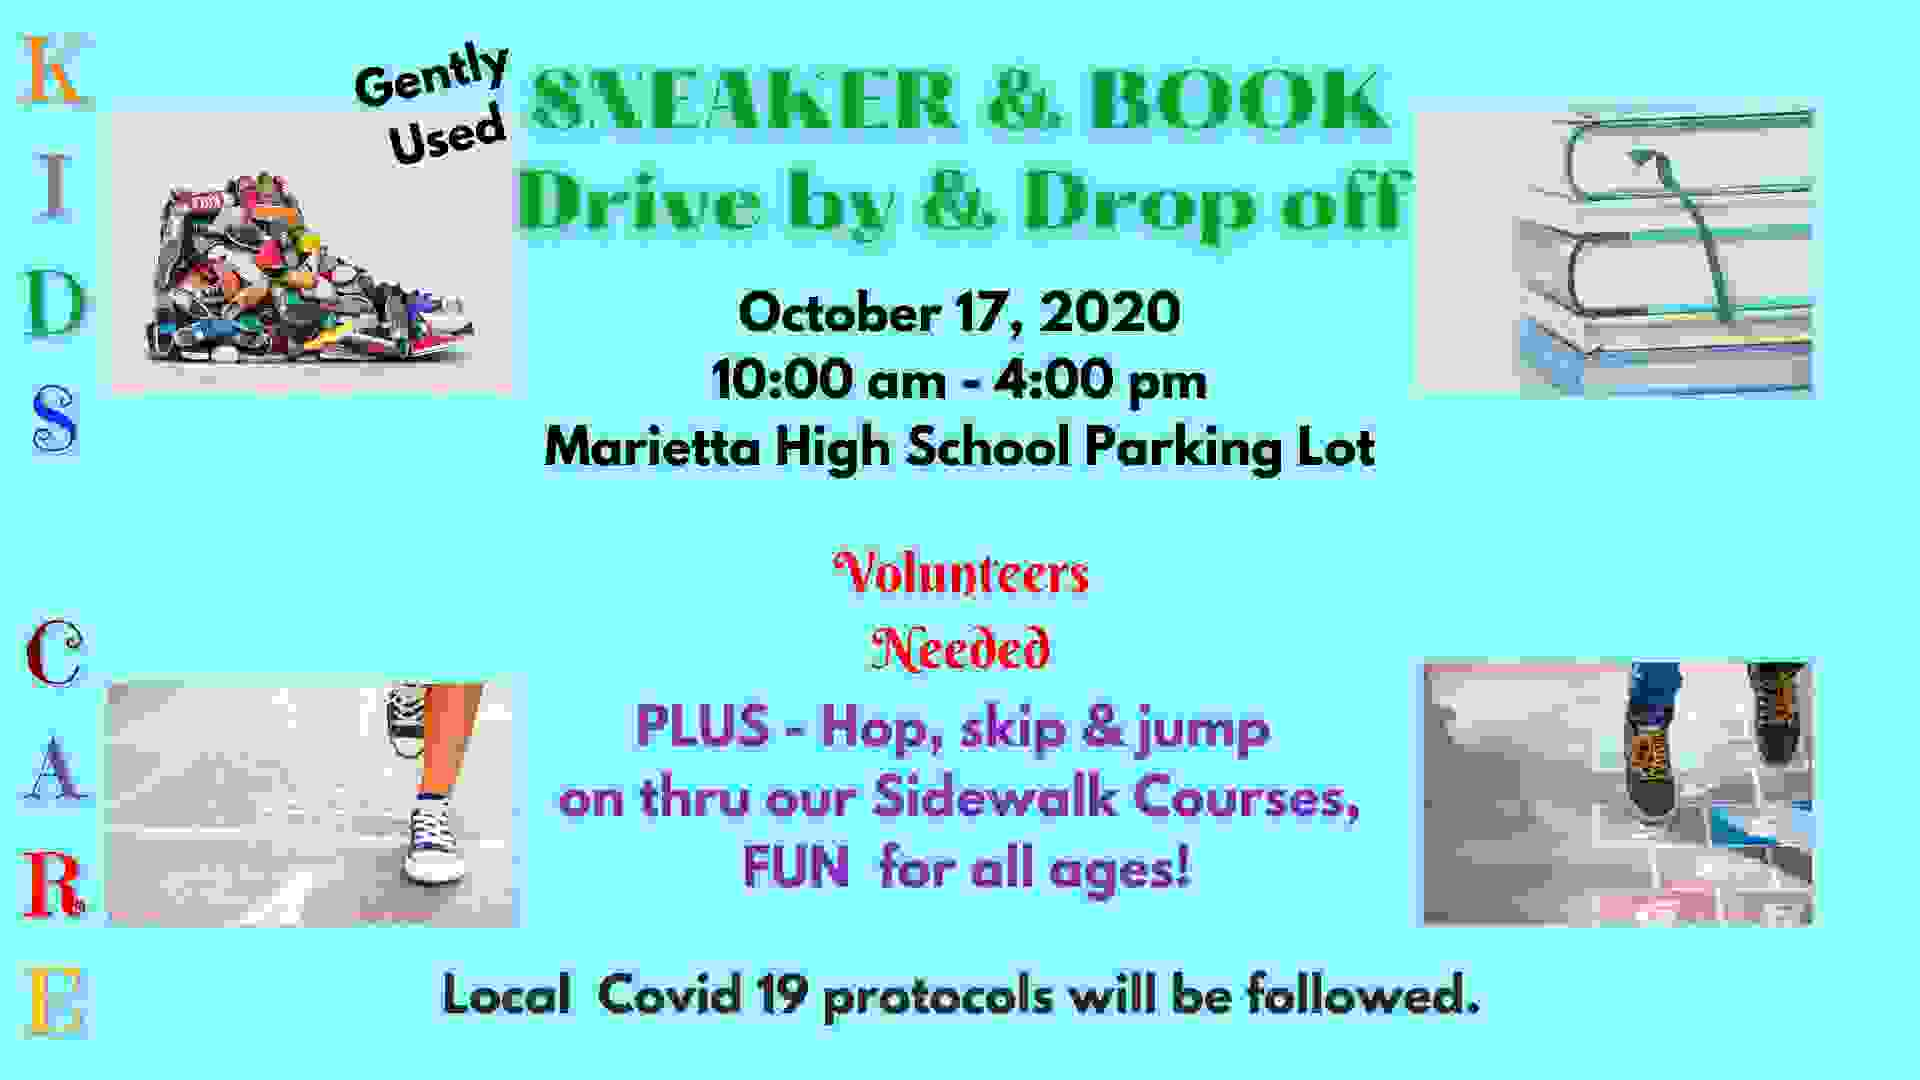 KIDS CARE Sneaker & Book Drive by & Drop off event details.